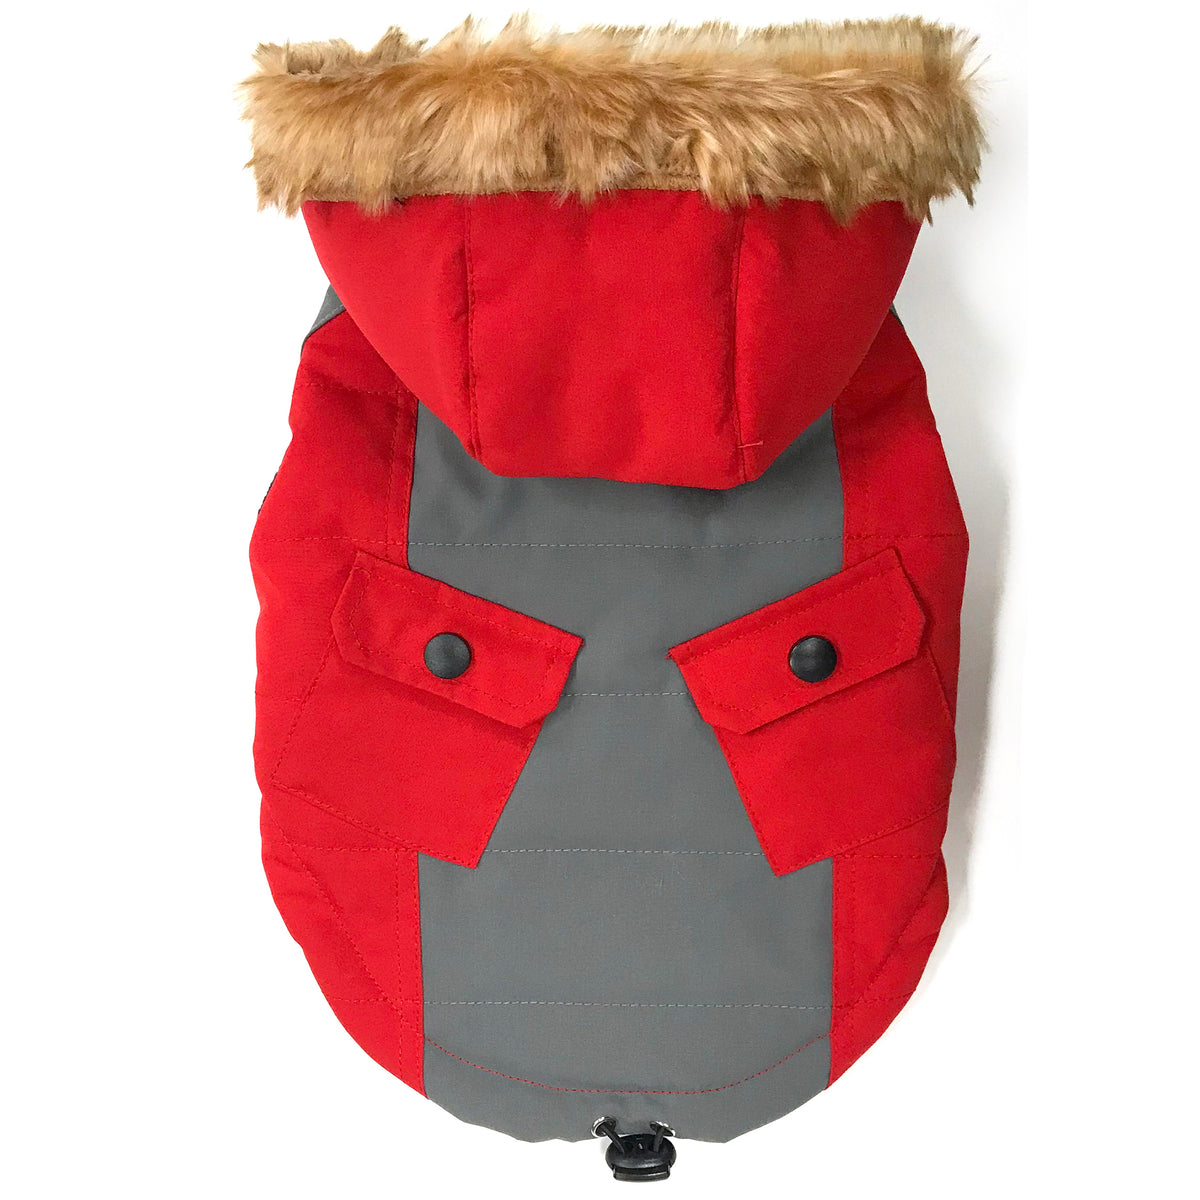 Doggie-Q Hooded Coat